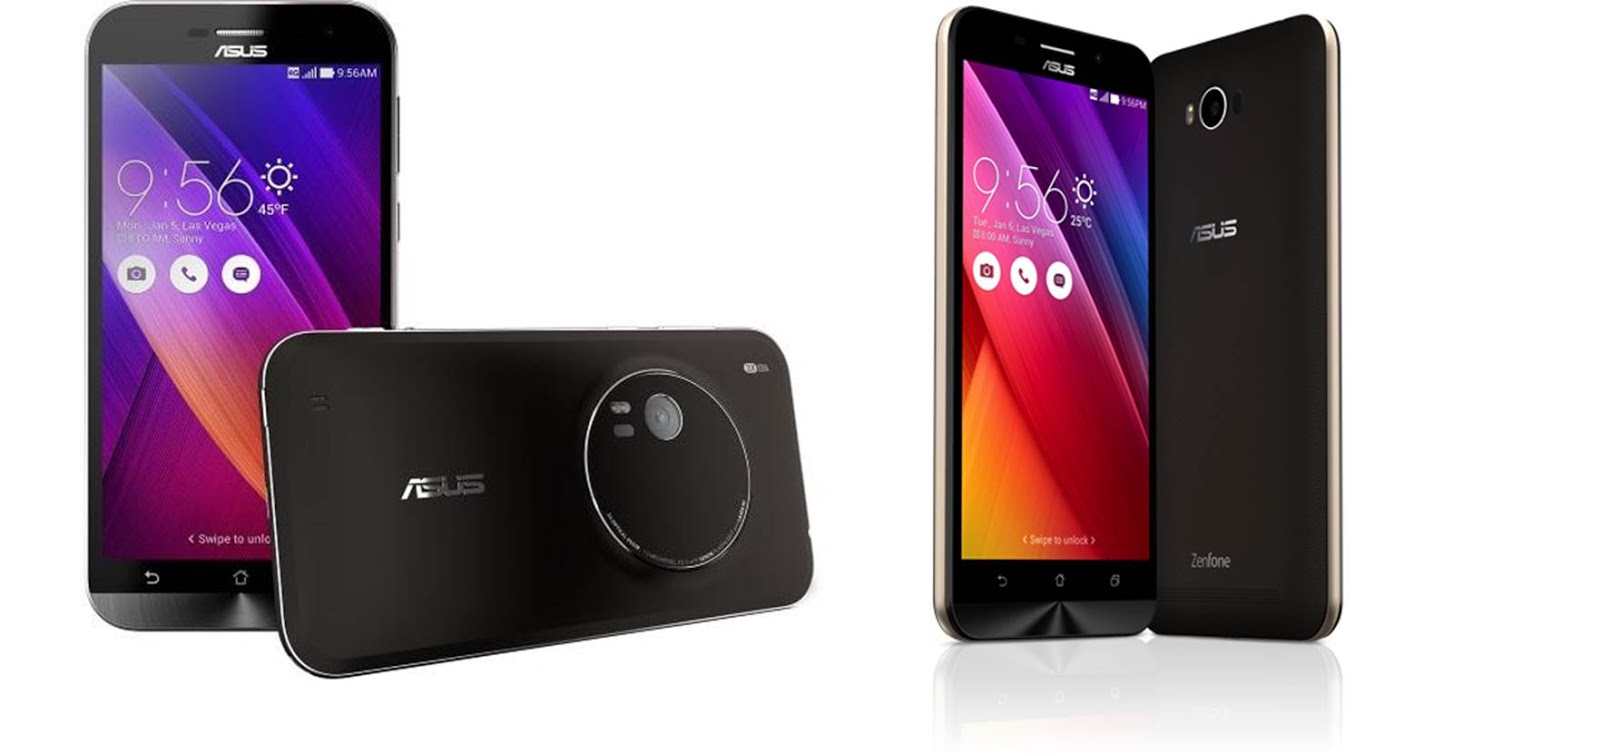 Asus Zenfone Zoom And Zenfone Max Now Official In The